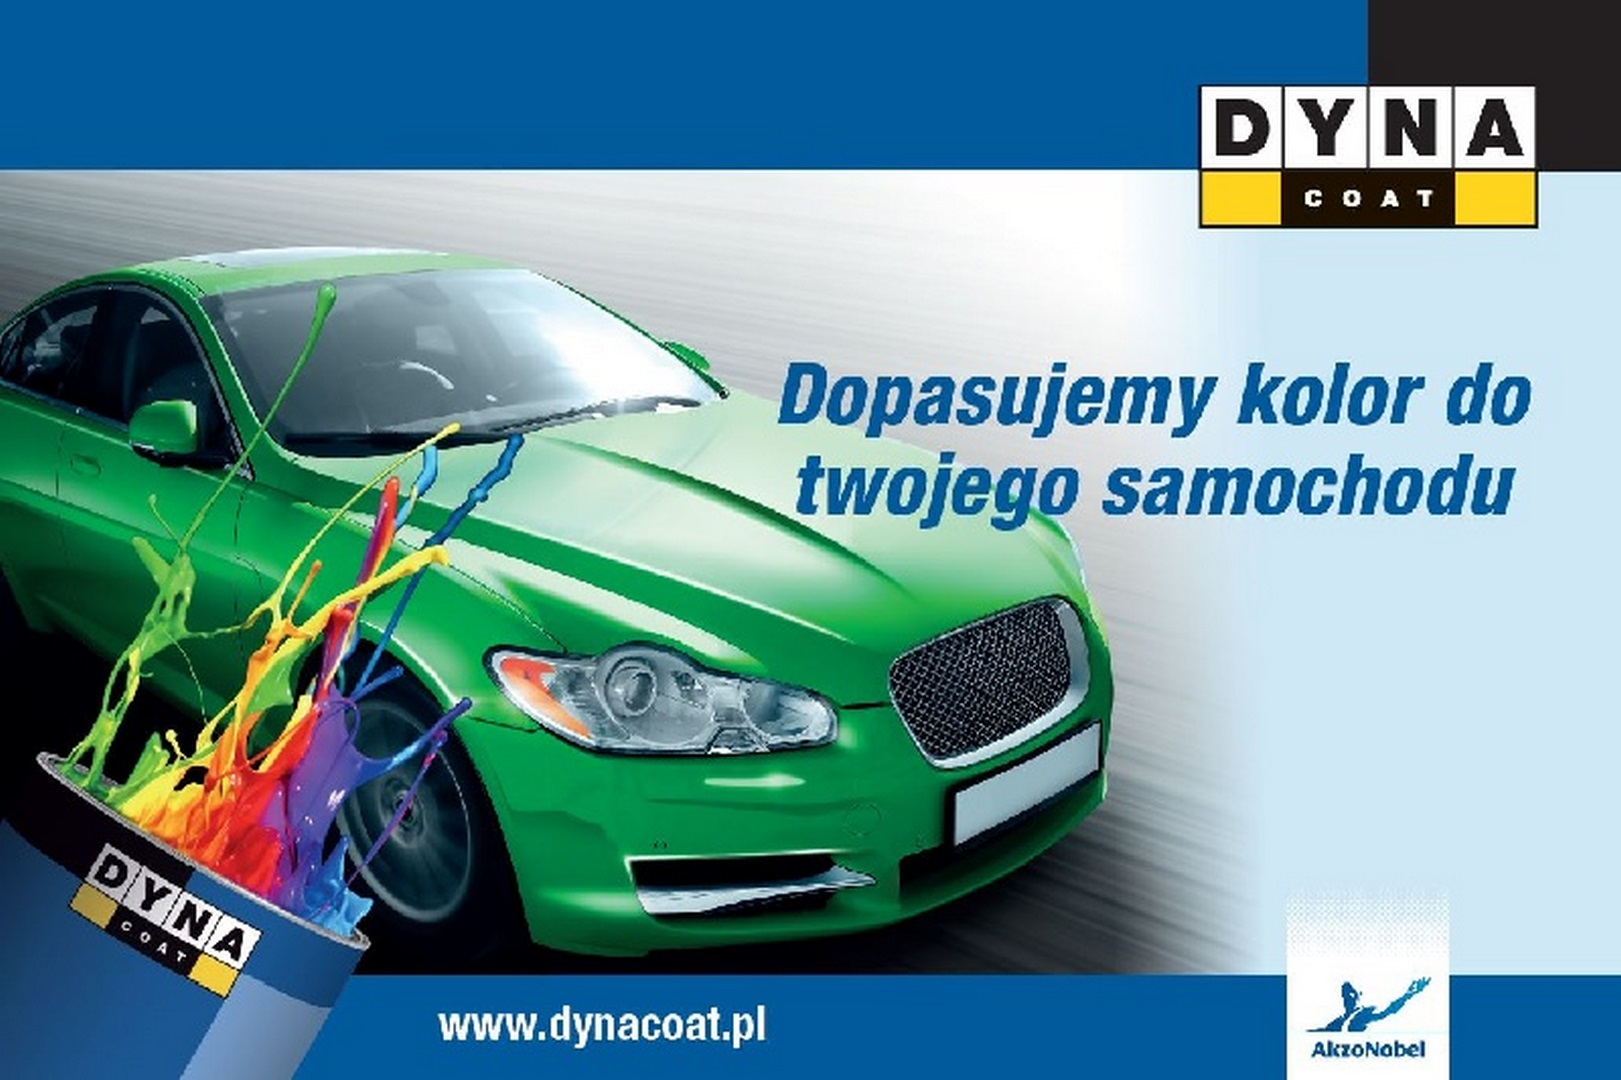 DYN_car_can-splash_PL001